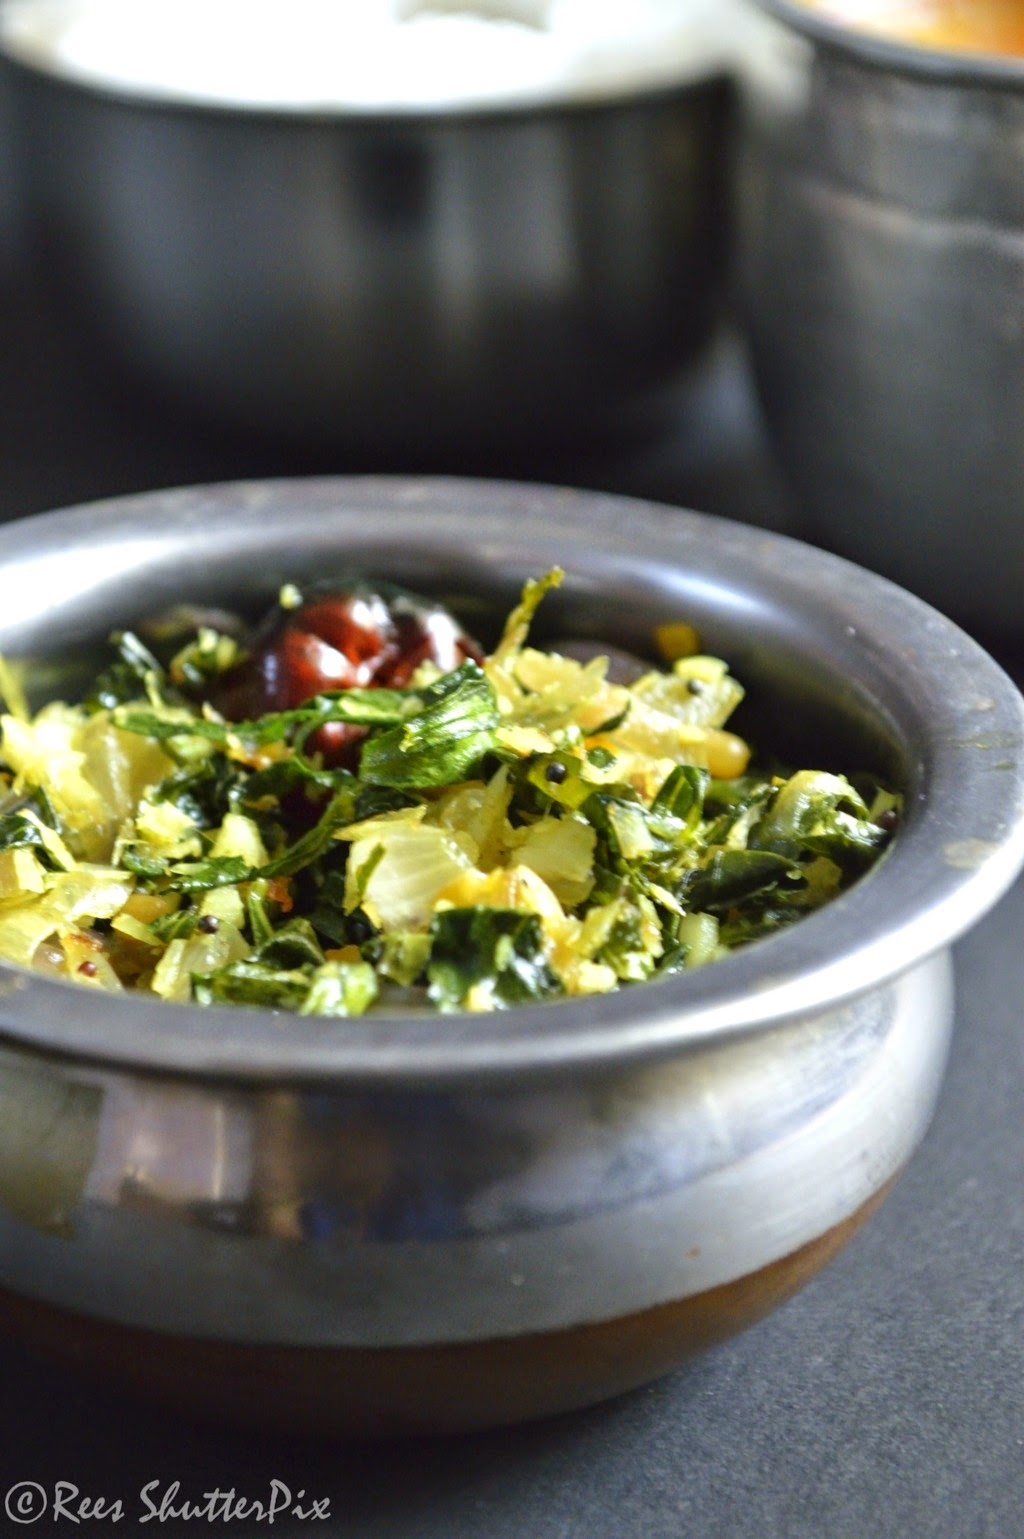 keerai, greens stir fry, side dish for rice, ponnagani keerai stir fry, grrens recipes, greens stir fry, keerai poriyal, keerai recipes, ponnagani keerai recipes, easy keerai recipes, keerai stir frykeerai, greens stir fry, side dish for rice, ponnagani keerai stir fry, grrens recipes, greens stir fry, keerai poriyal, keerai recipes, ponnagani keerai recipes, easy keerai recipes, keerai stir fry